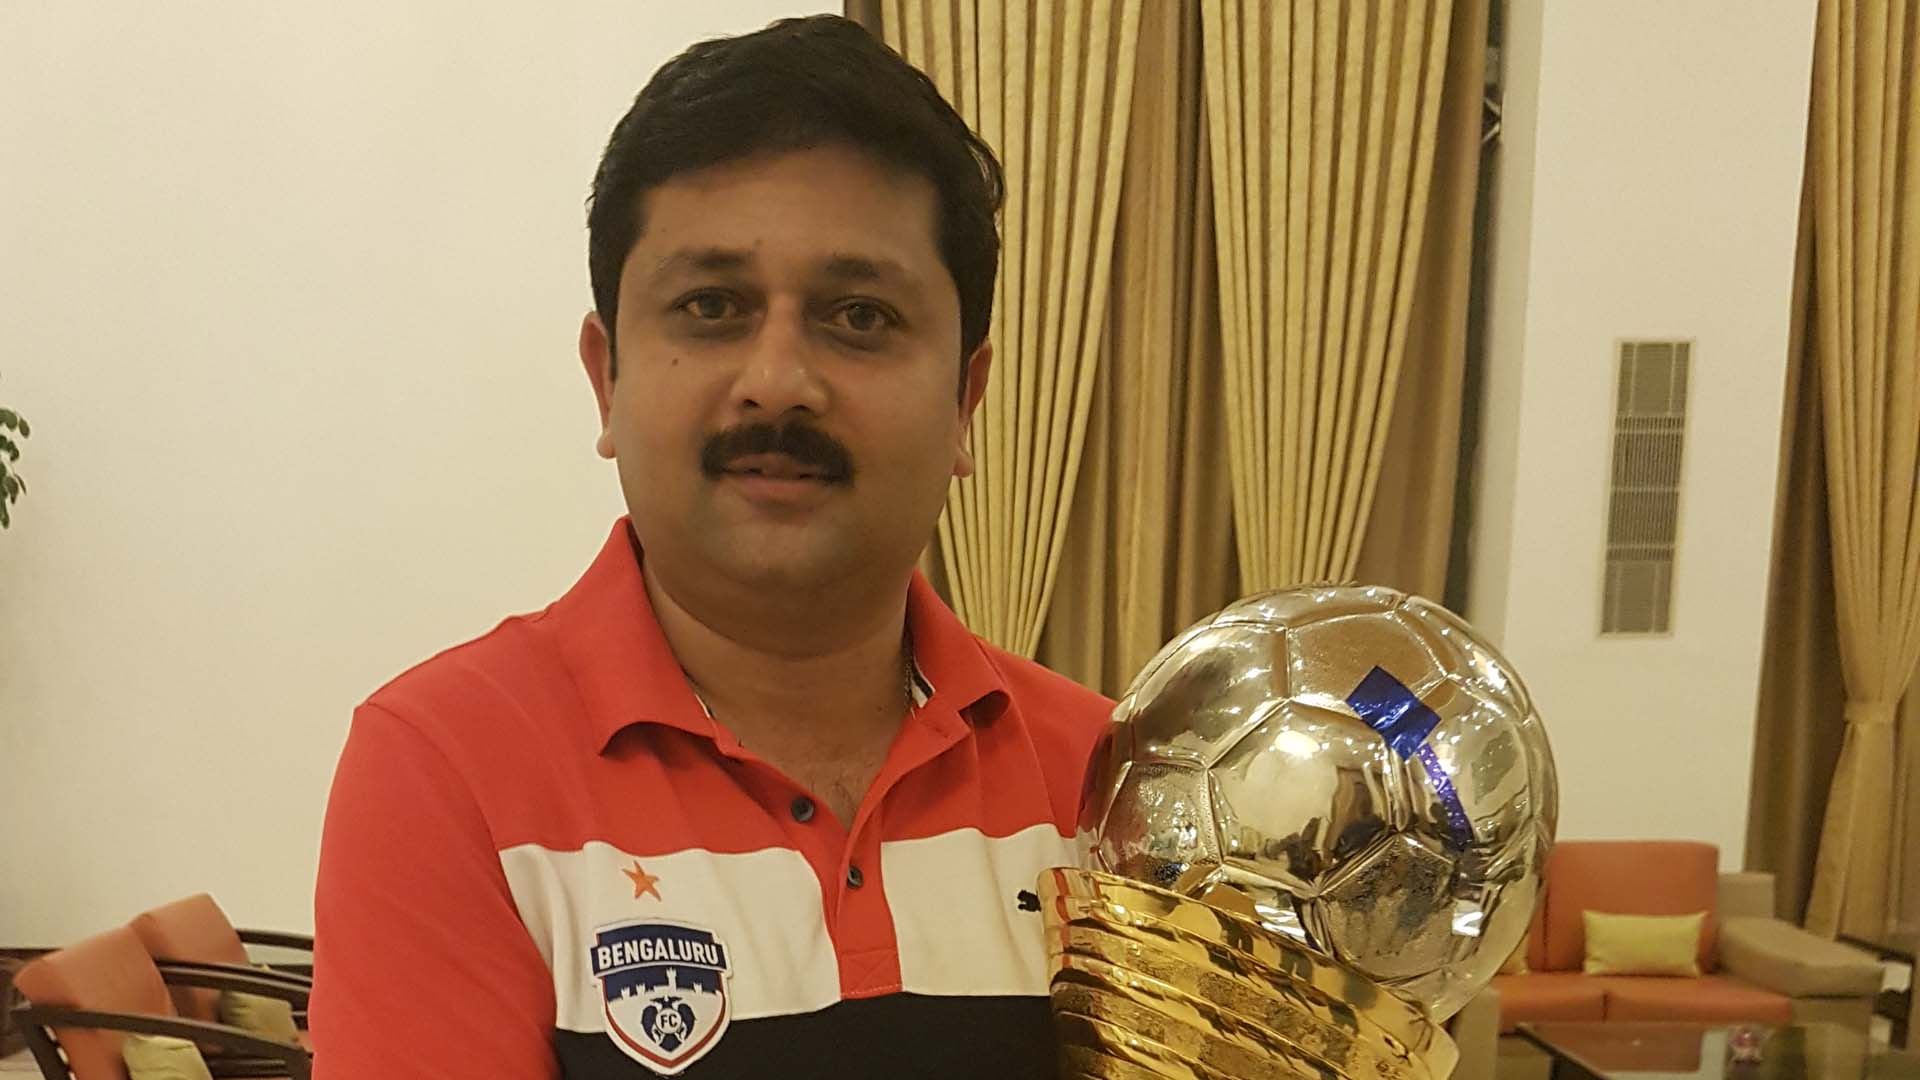 Mandar Tamhane Chief Technical Officer Bengaluru FC